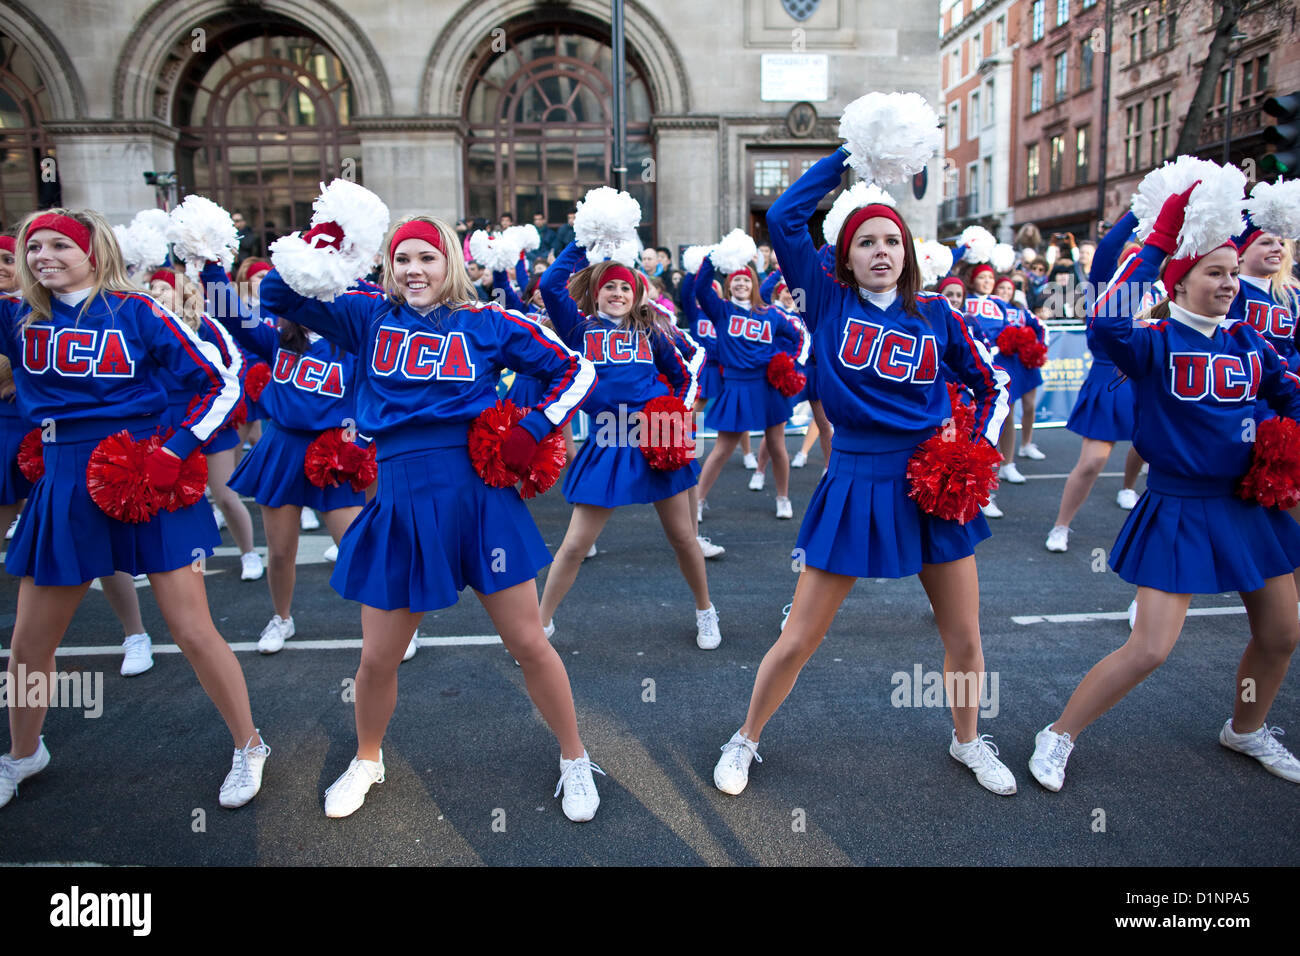 London's New Year's Day Parade 2013, England, UK. 01.01.2013 All American cheerleaders and dancers from - Stock Image